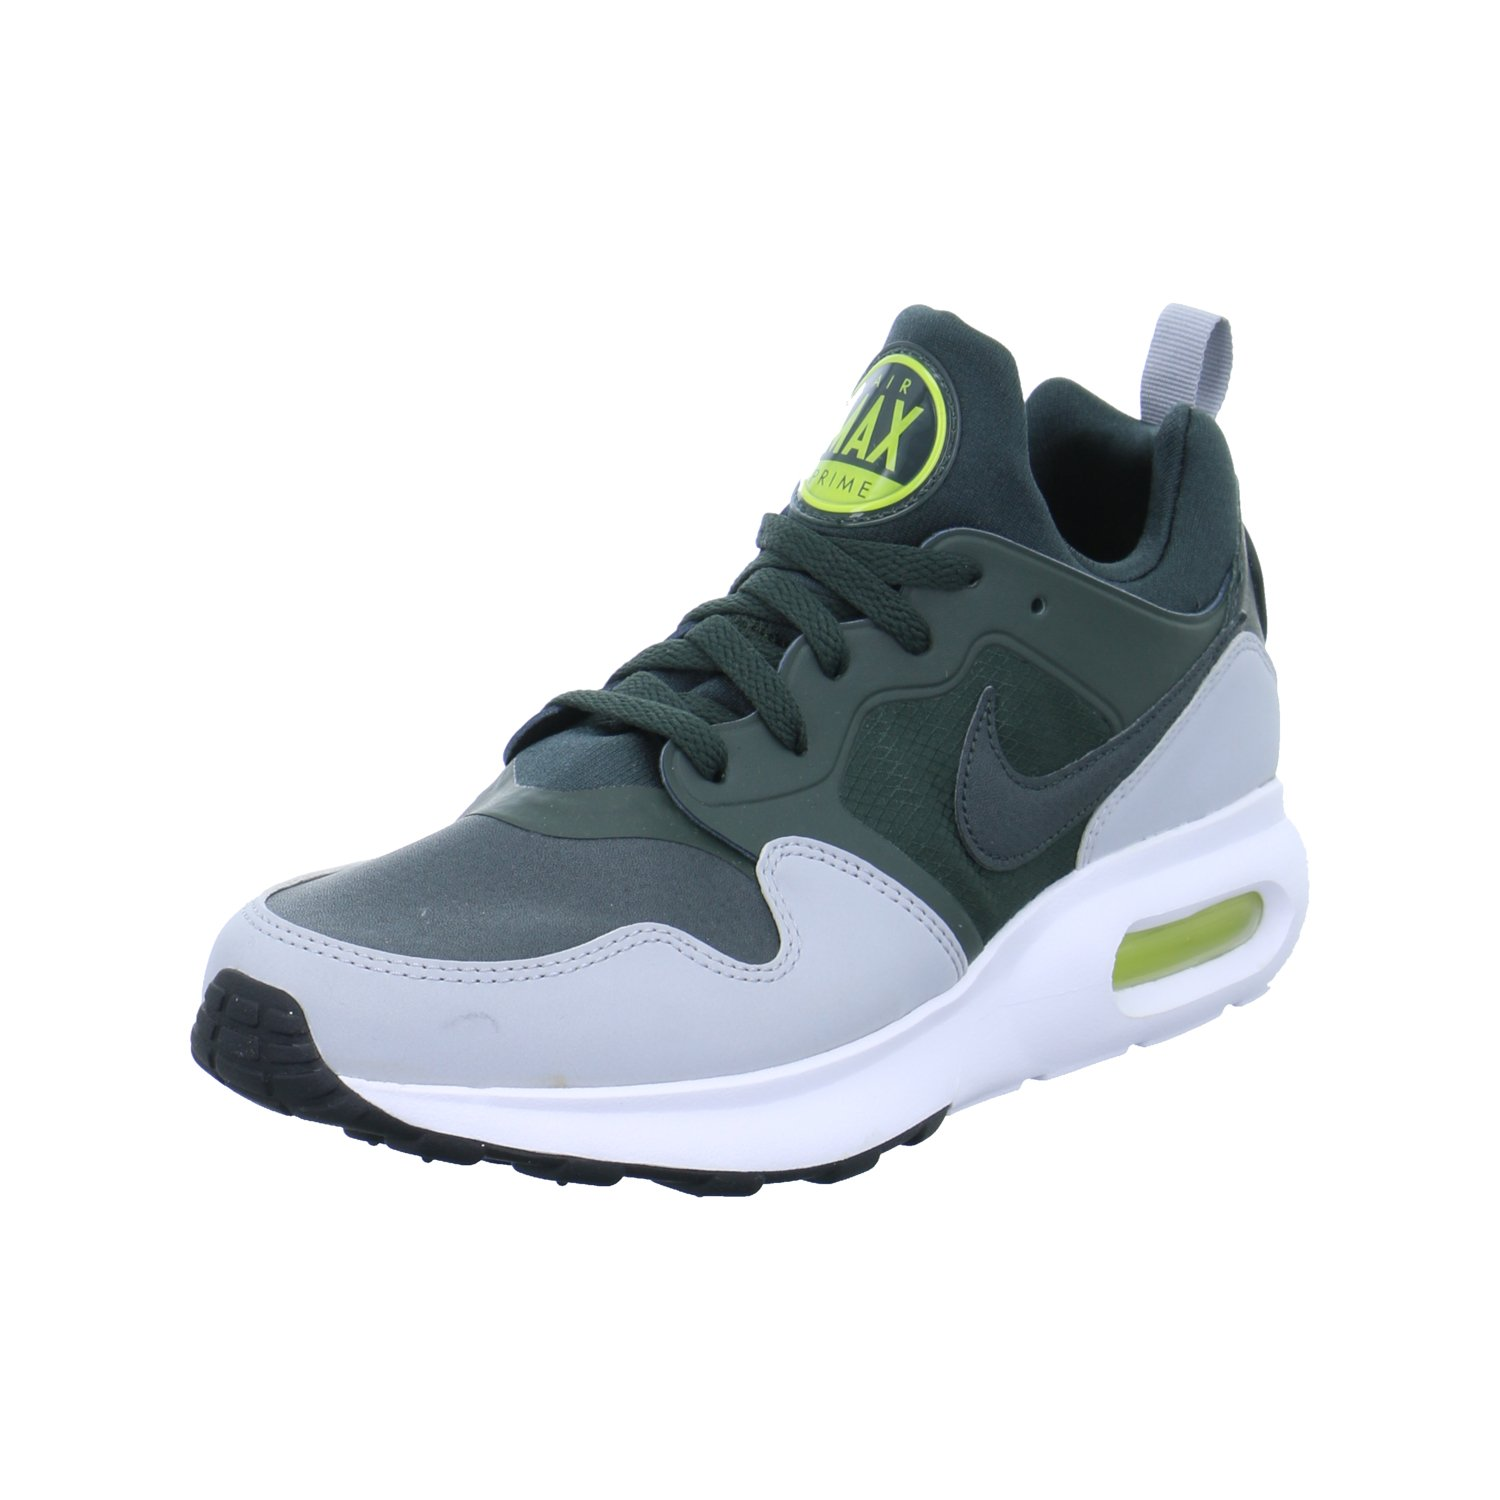 competitive price a7845 2b815 Nike Men s Air Max Prime Sl Low-Top Sneakers  Amazon.co.uk  Shoes   Bags